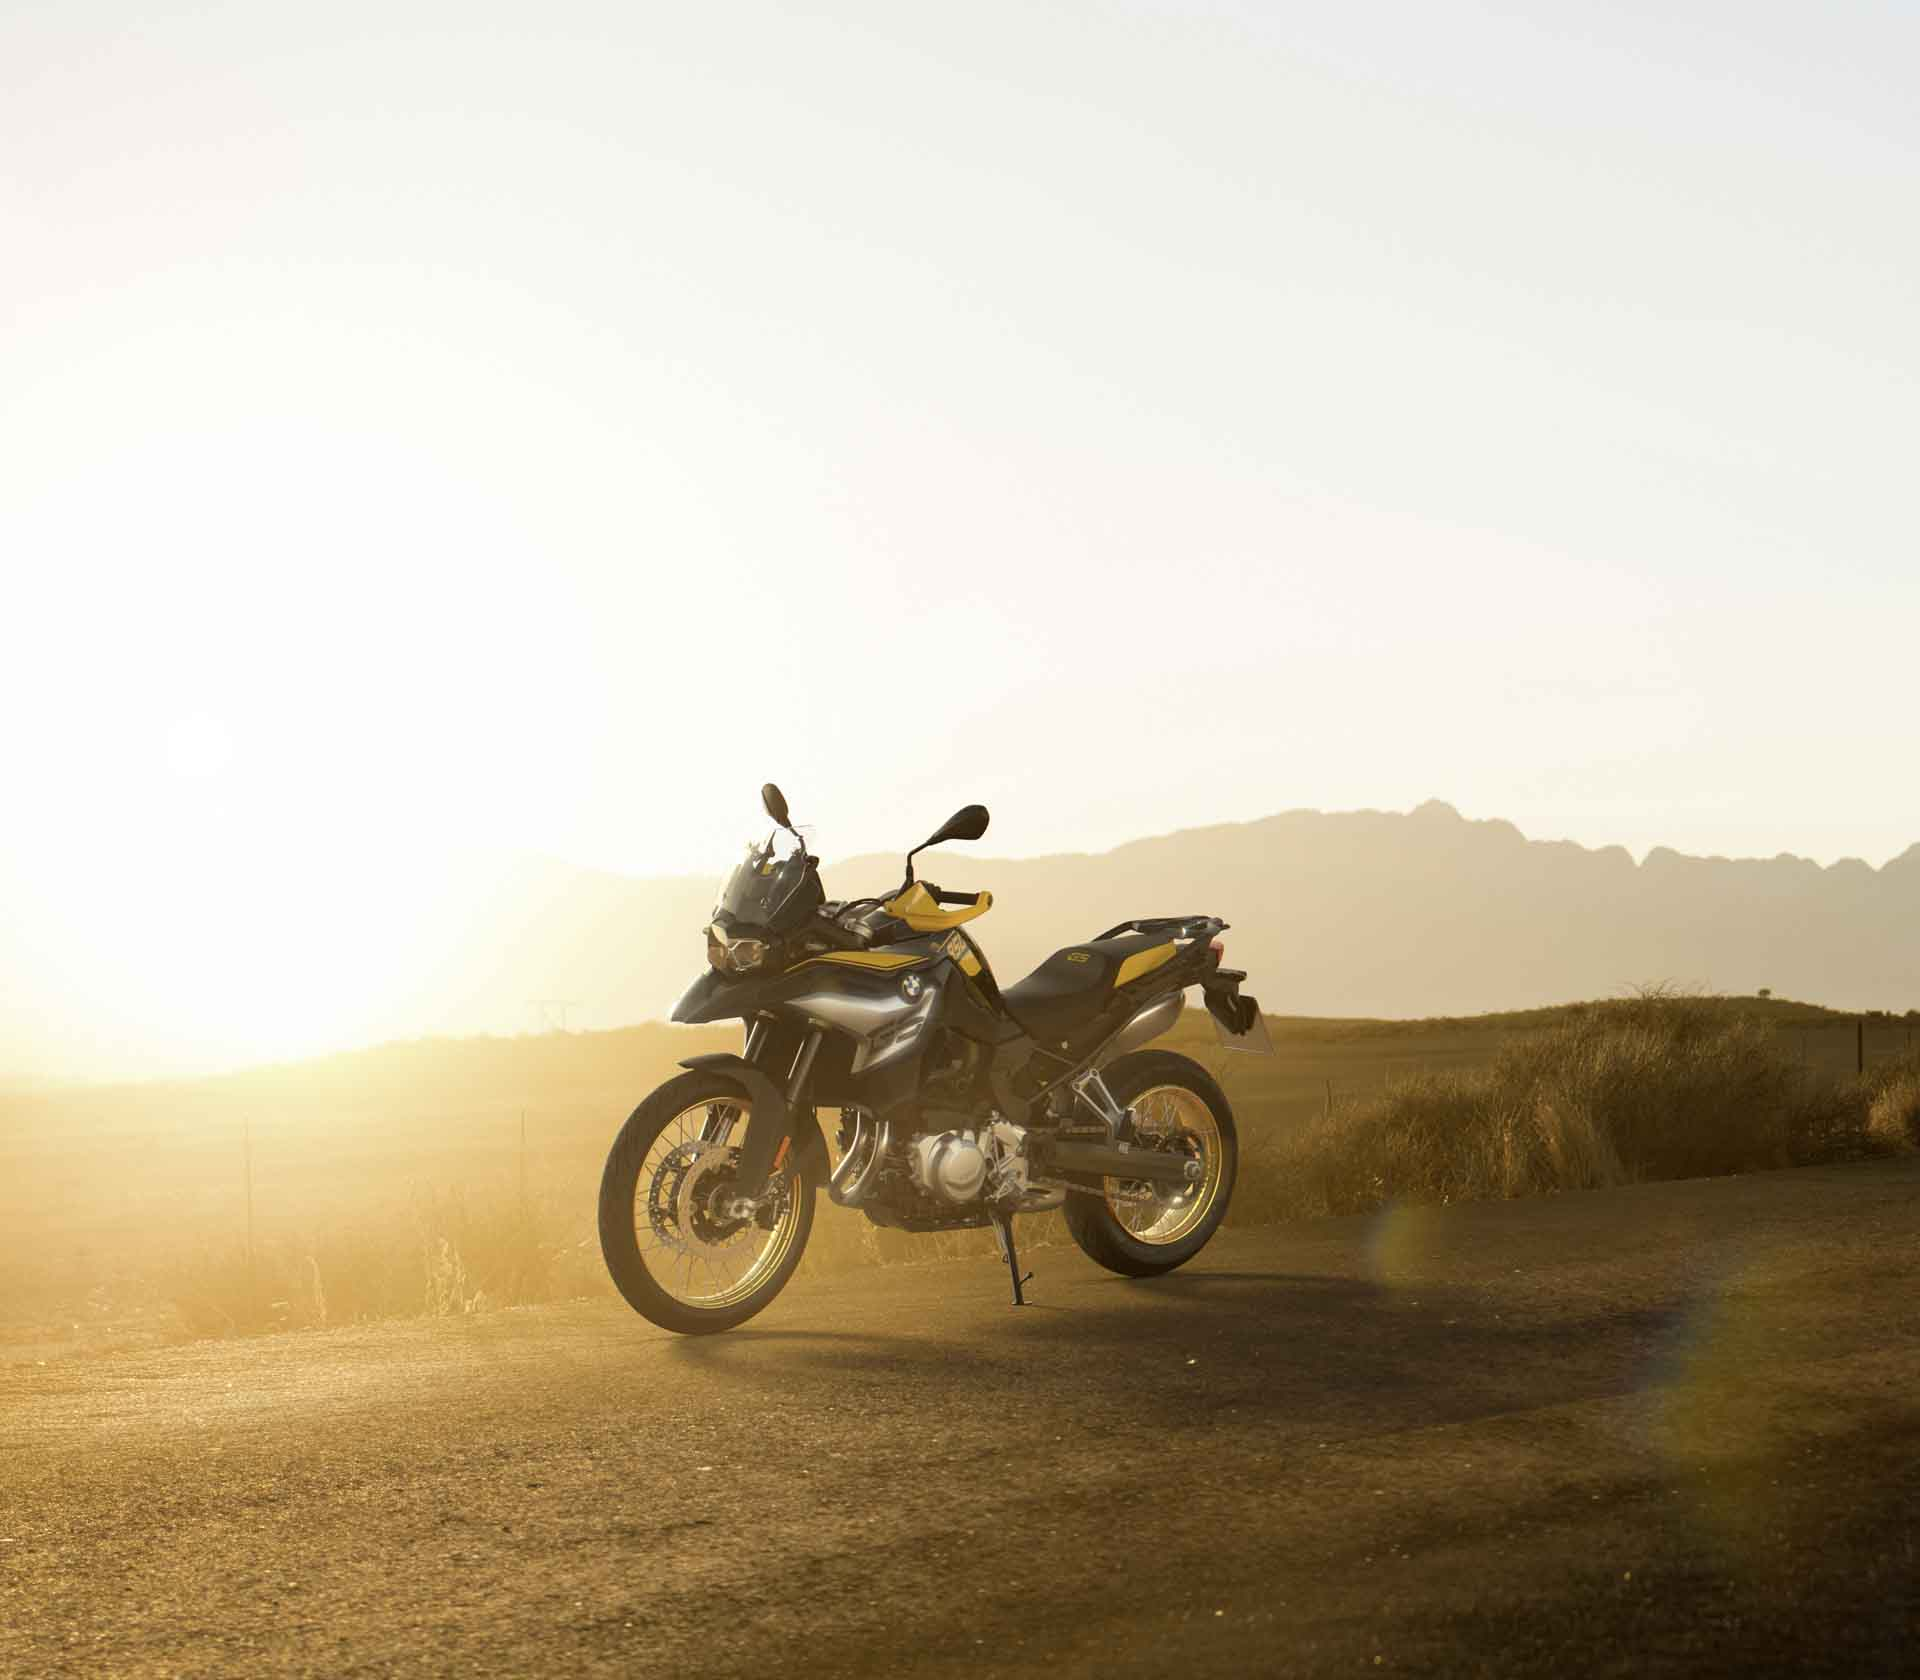 """BMW F850 GS """"40 Years Edition"""" : The most iconic adventure motorcycle brand celebrates its birthday with a special edition!"""